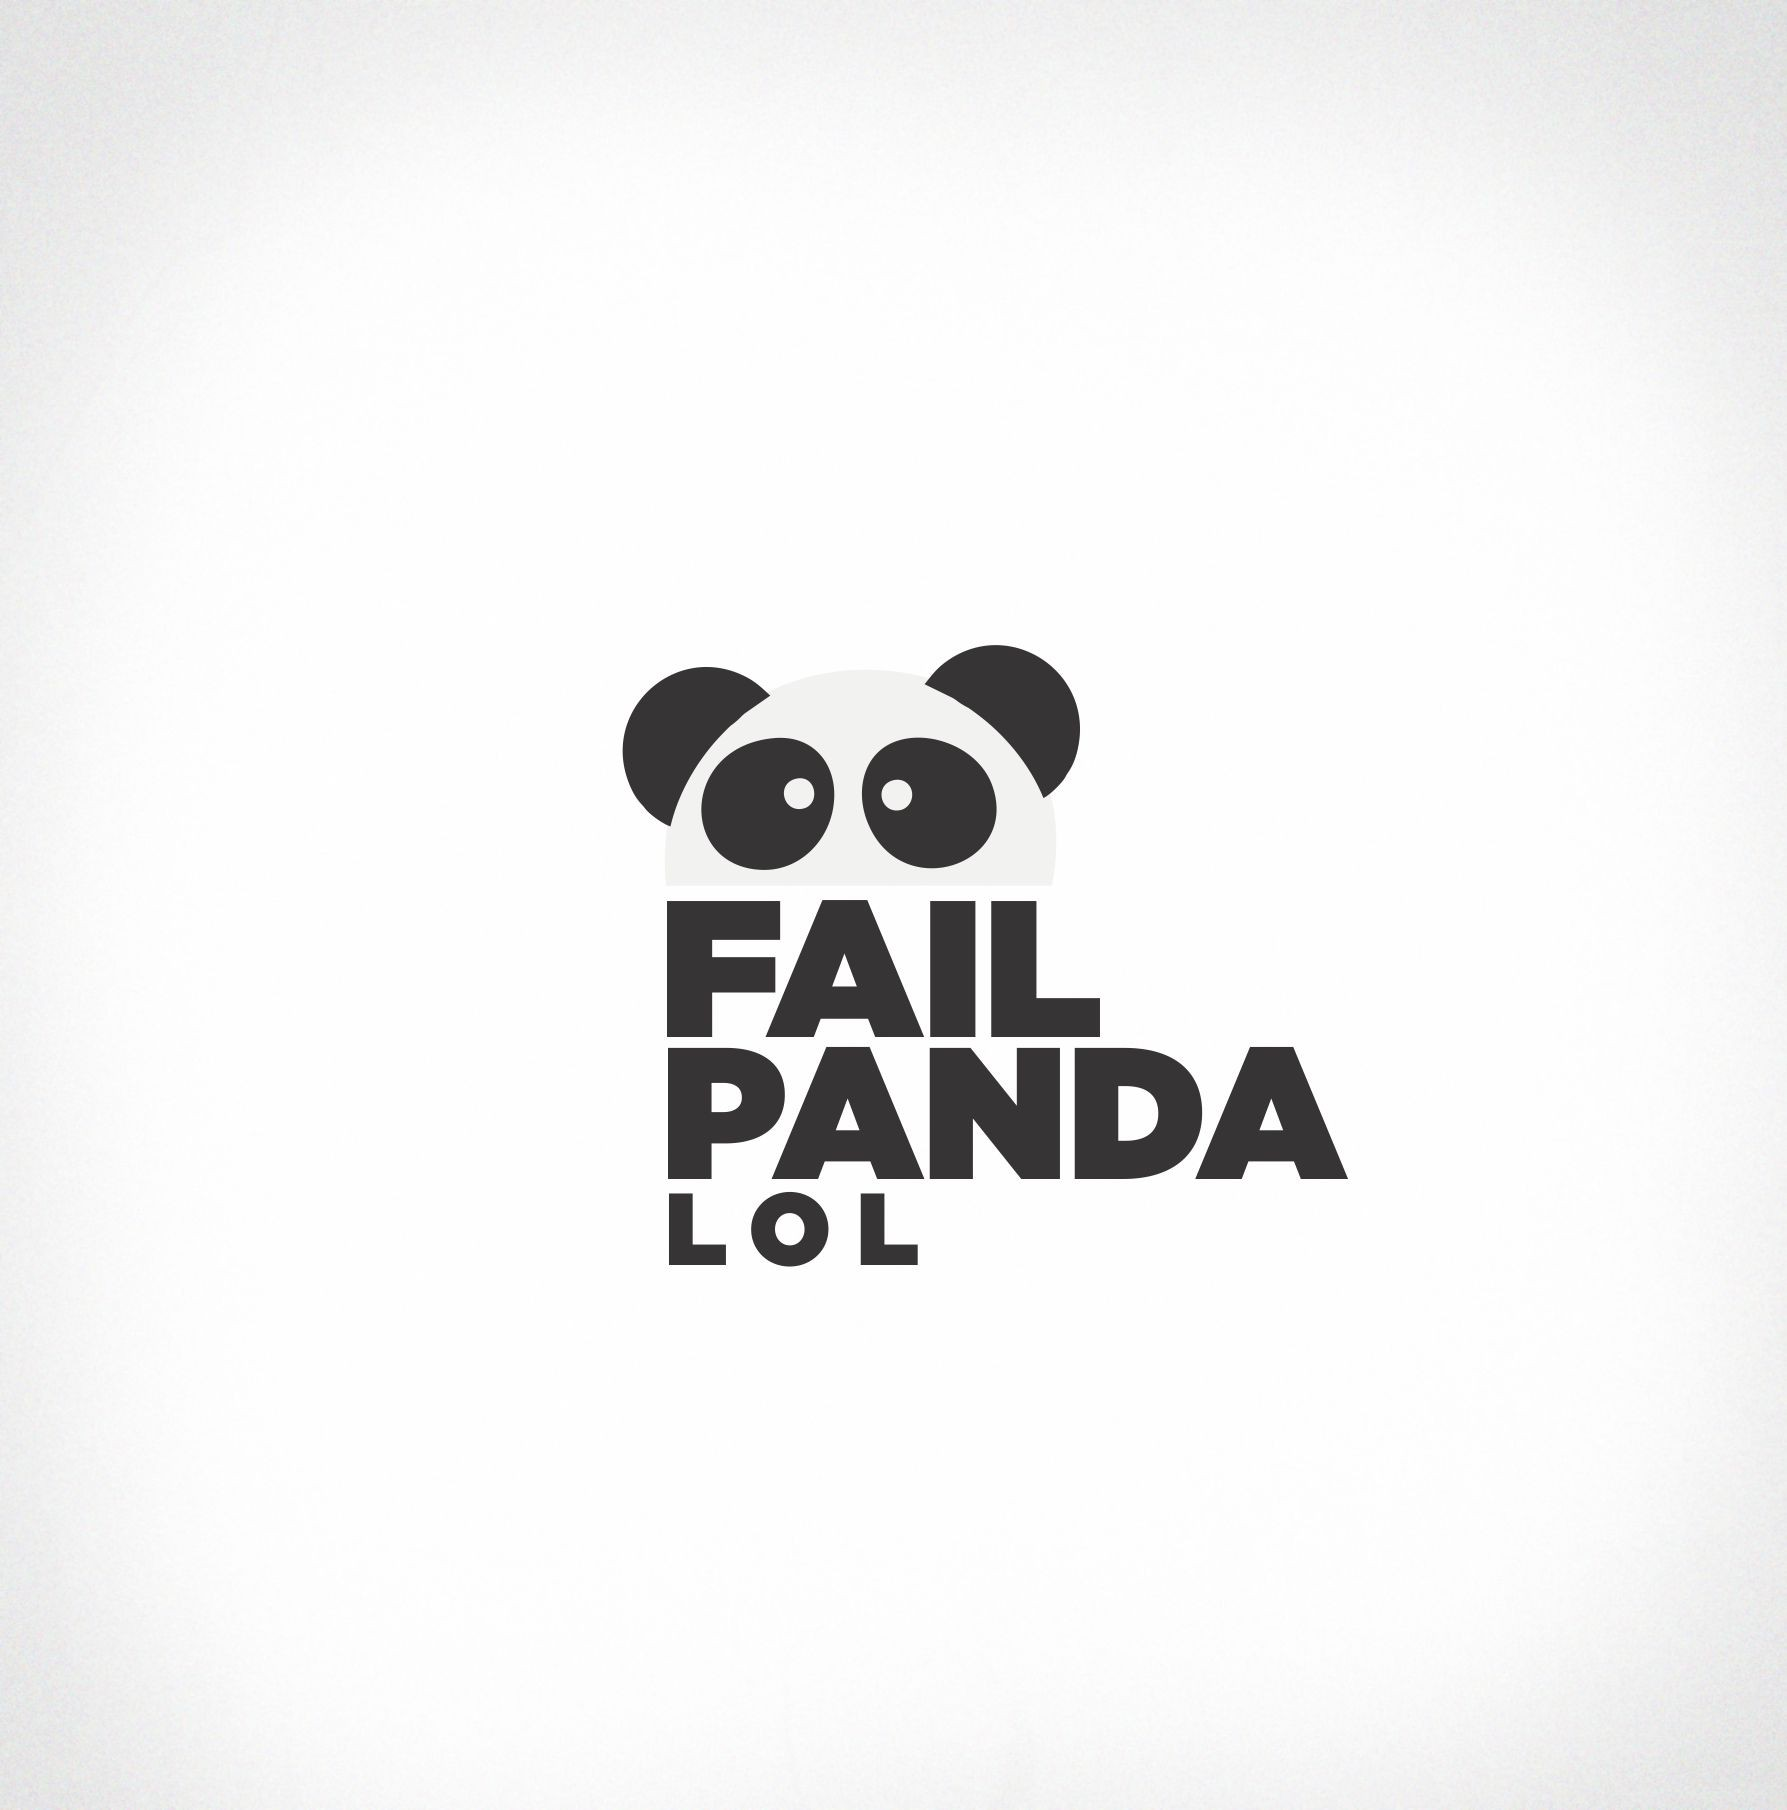 Design the Fail Panda logo for a funny youtube channel